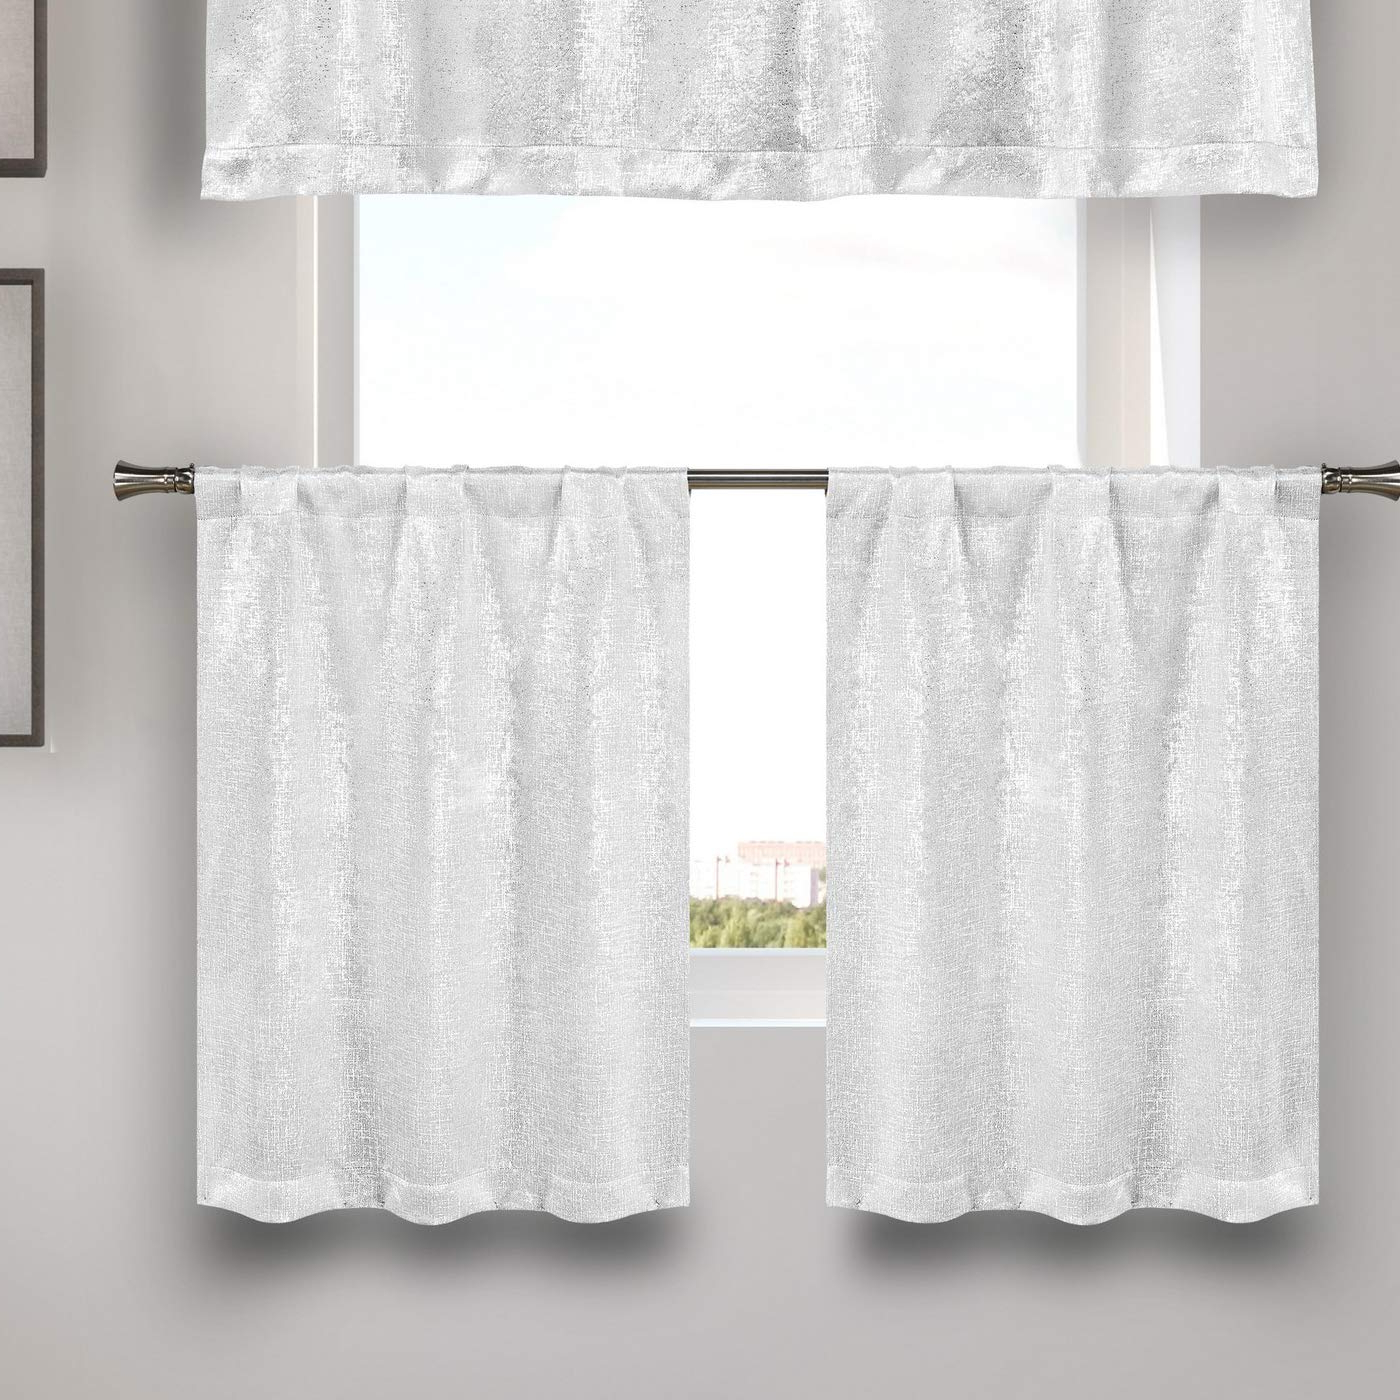 Small Window Curtain For Cafe, Bath, Laundry, Bedroom – White) Inside Most Popular Grey Window Curtain Tier And Valance Sets (View 9 of 20)